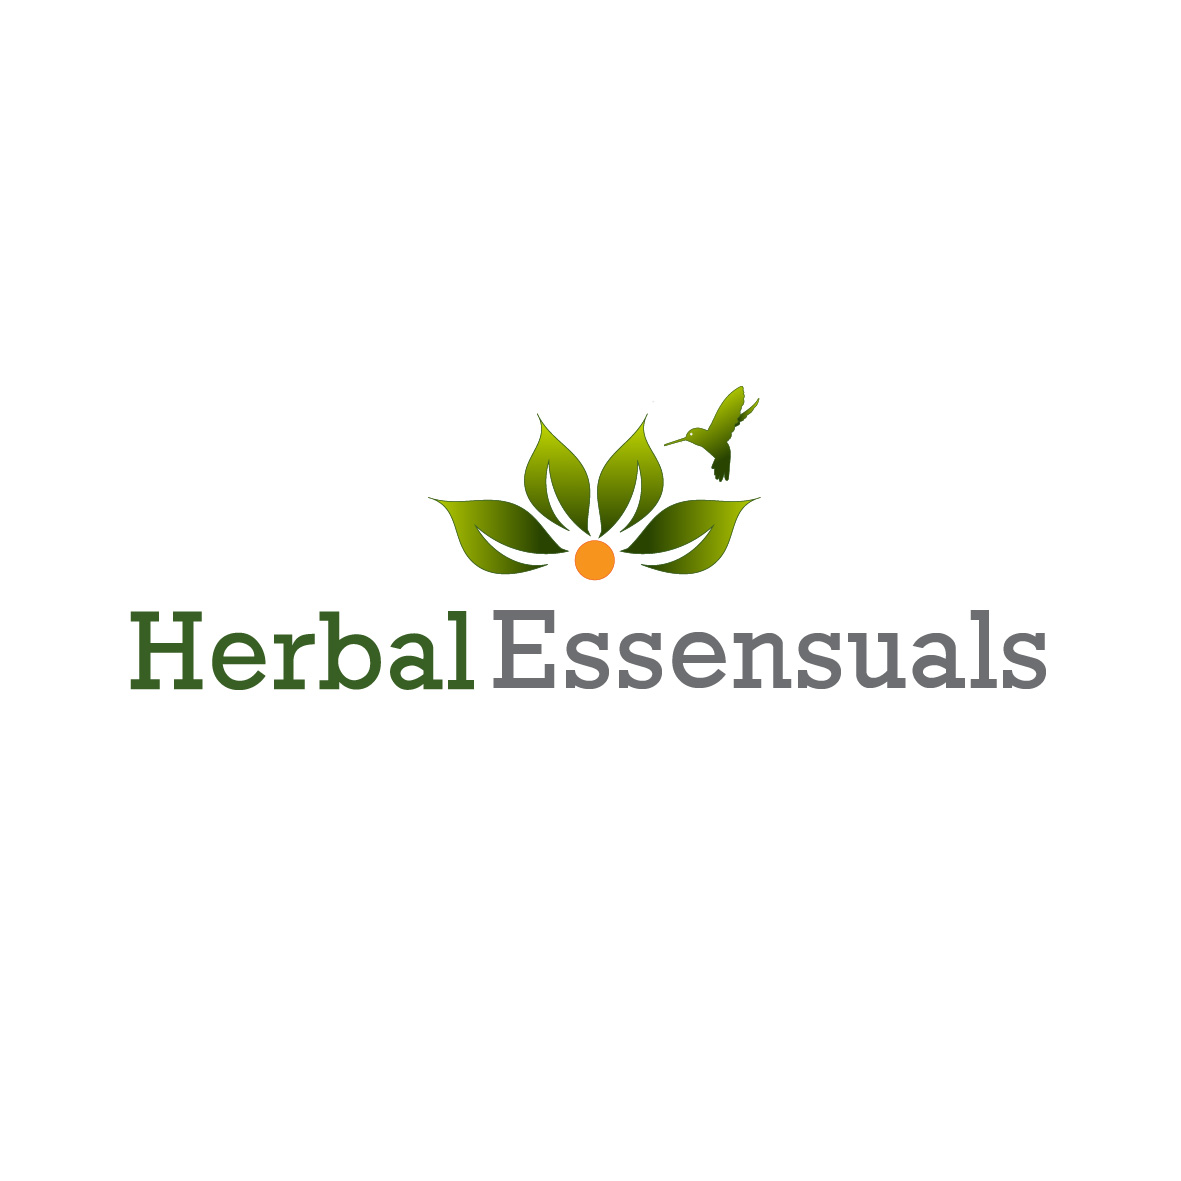 Logo Design by Robert Engi - Entry No. 162 in the Logo Design Contest Captivating Logo Design for Herbal Essensuals.